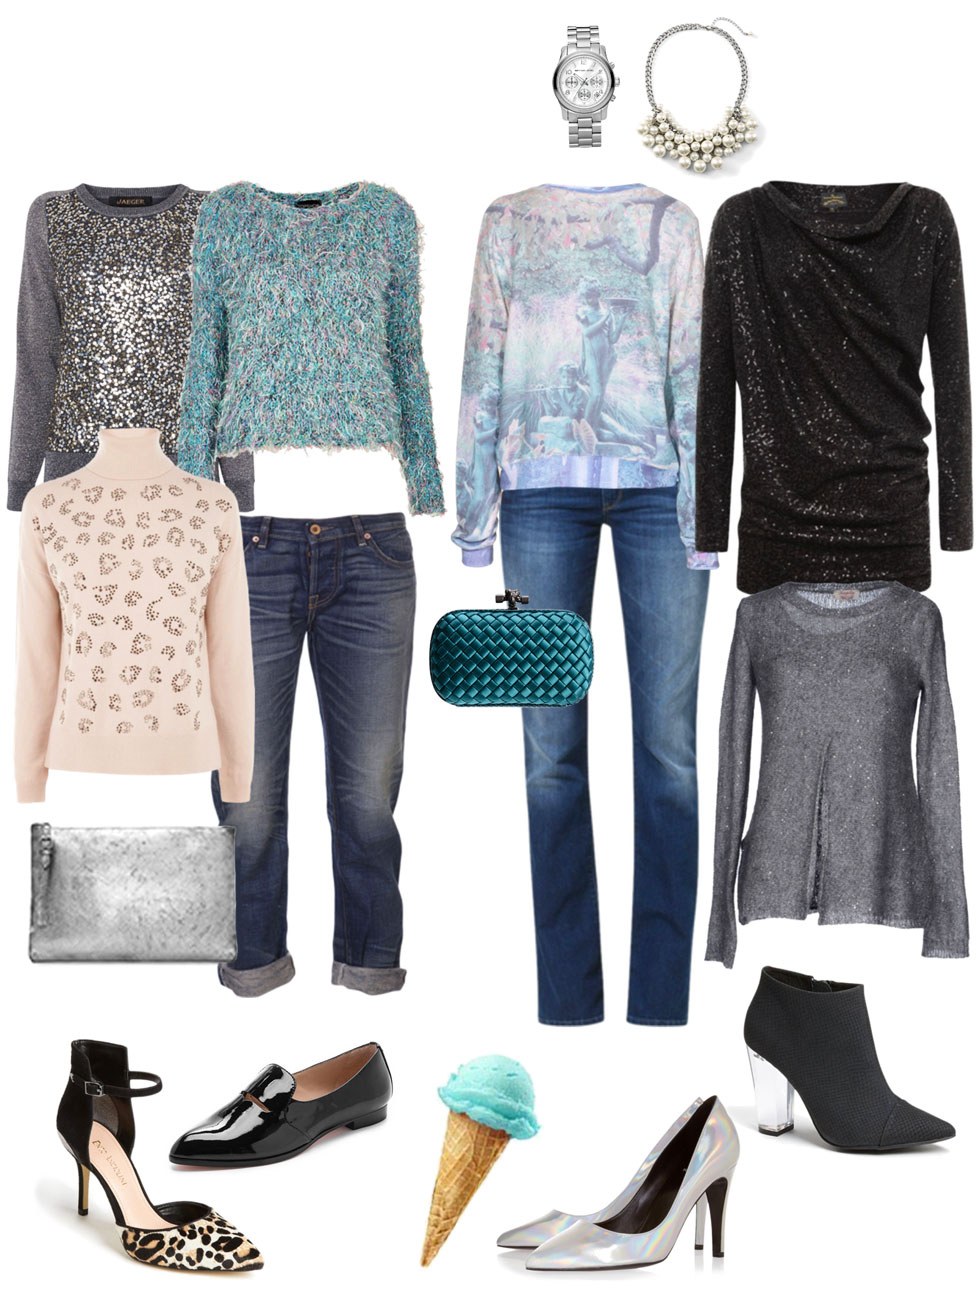 Party Ensemble: Jeans and Festive Sweater